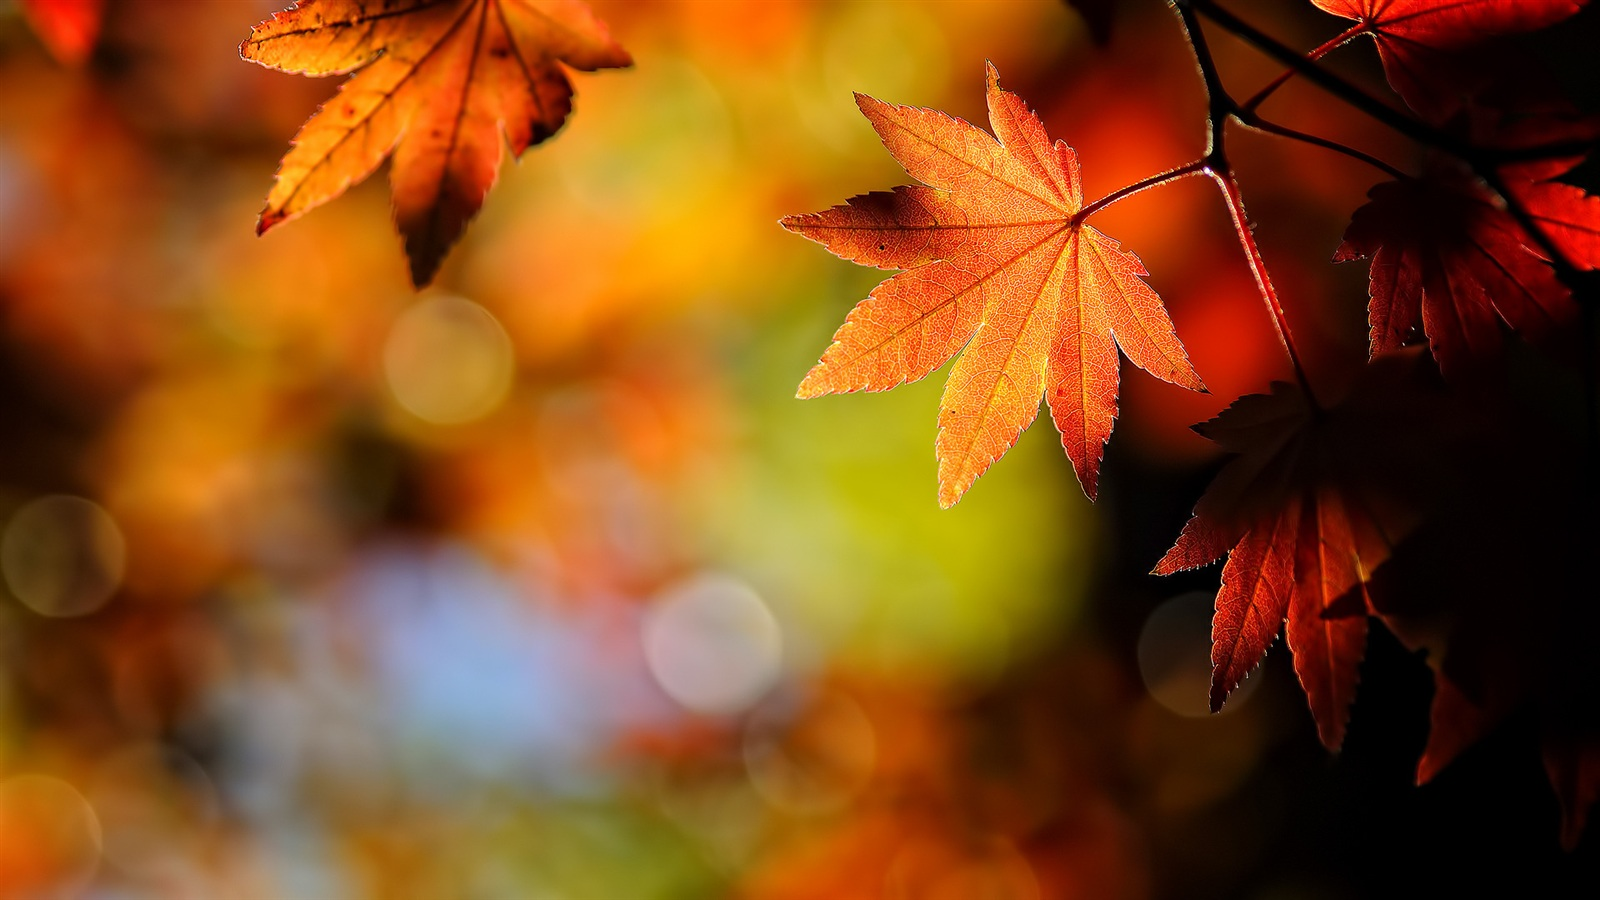 Autumn leaves Natur 1920x1080 Full HD 2K Hintergrundbilder ...